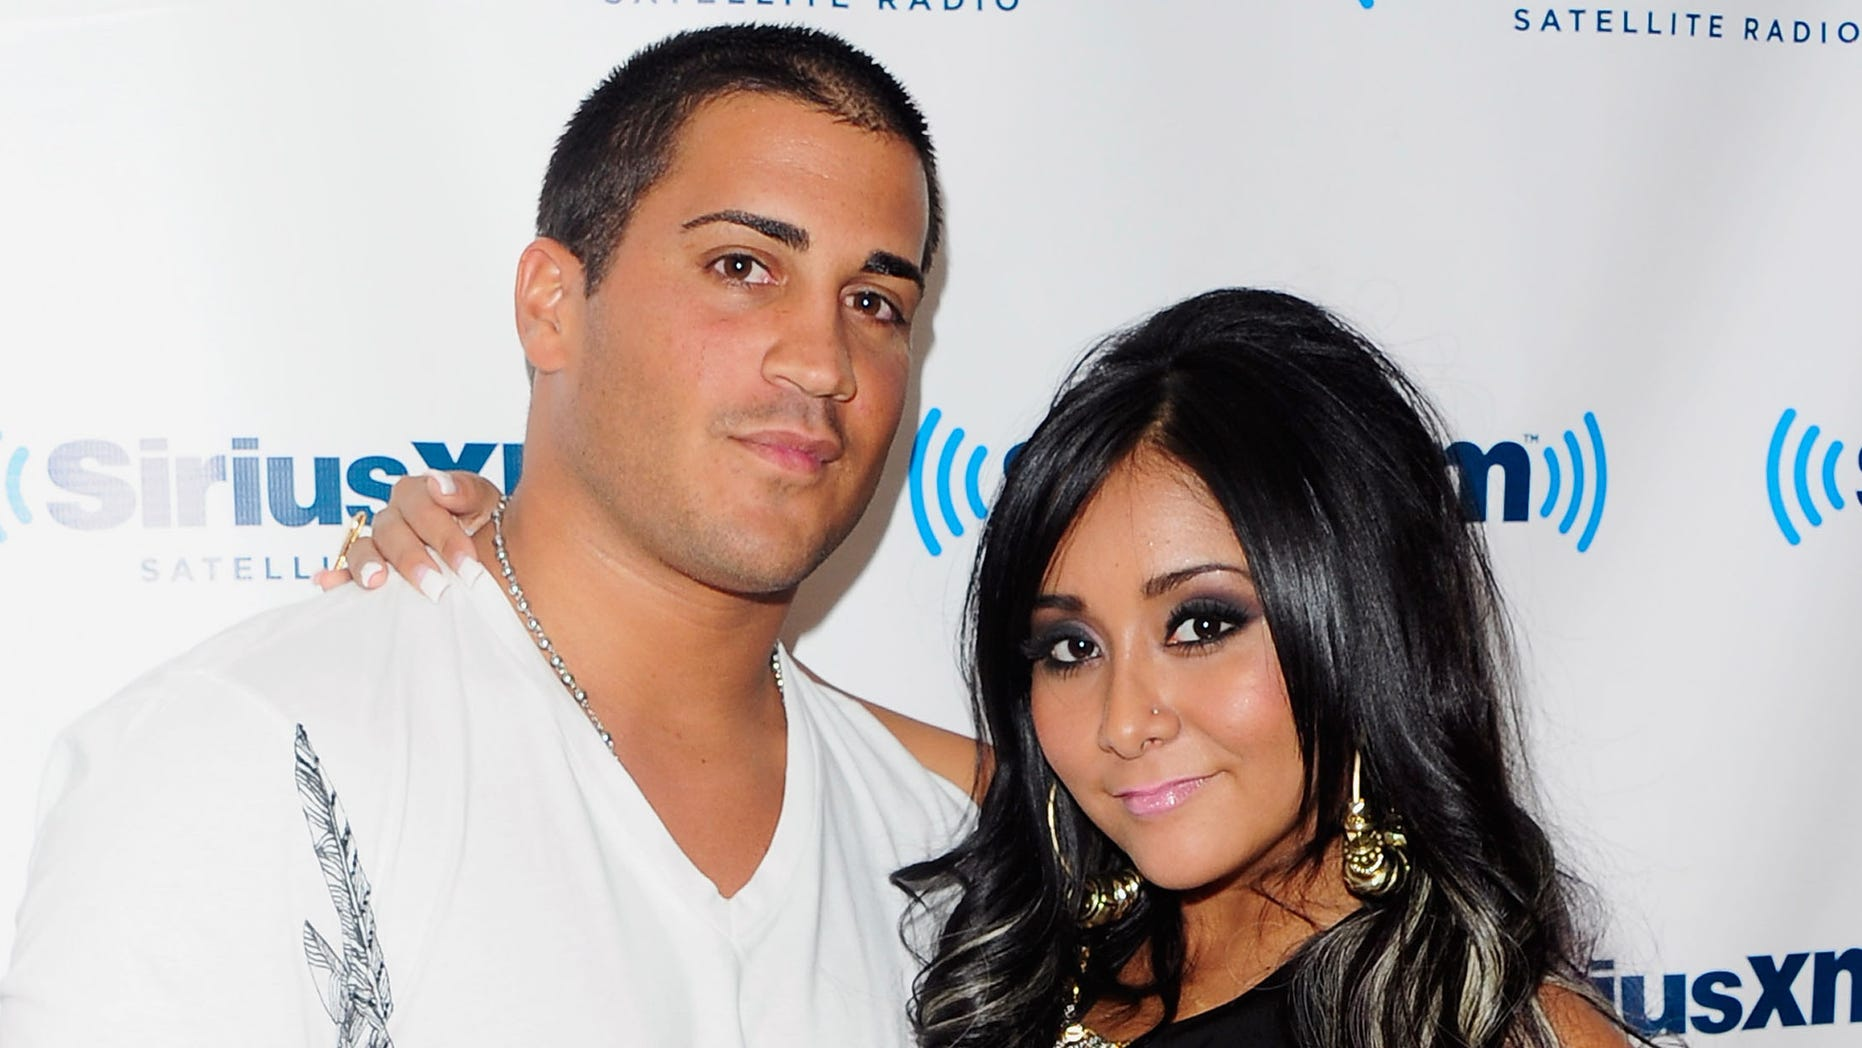 """NEW YORK, NY - AUGUST 11:  Jionni LaValle and TV personality Nicole """"Snooki"""" Polizzi visit SiriusXM's studio on August 11, 2011 in New York City.  (Photo by Andrew H. Walker/Getty Images)"""